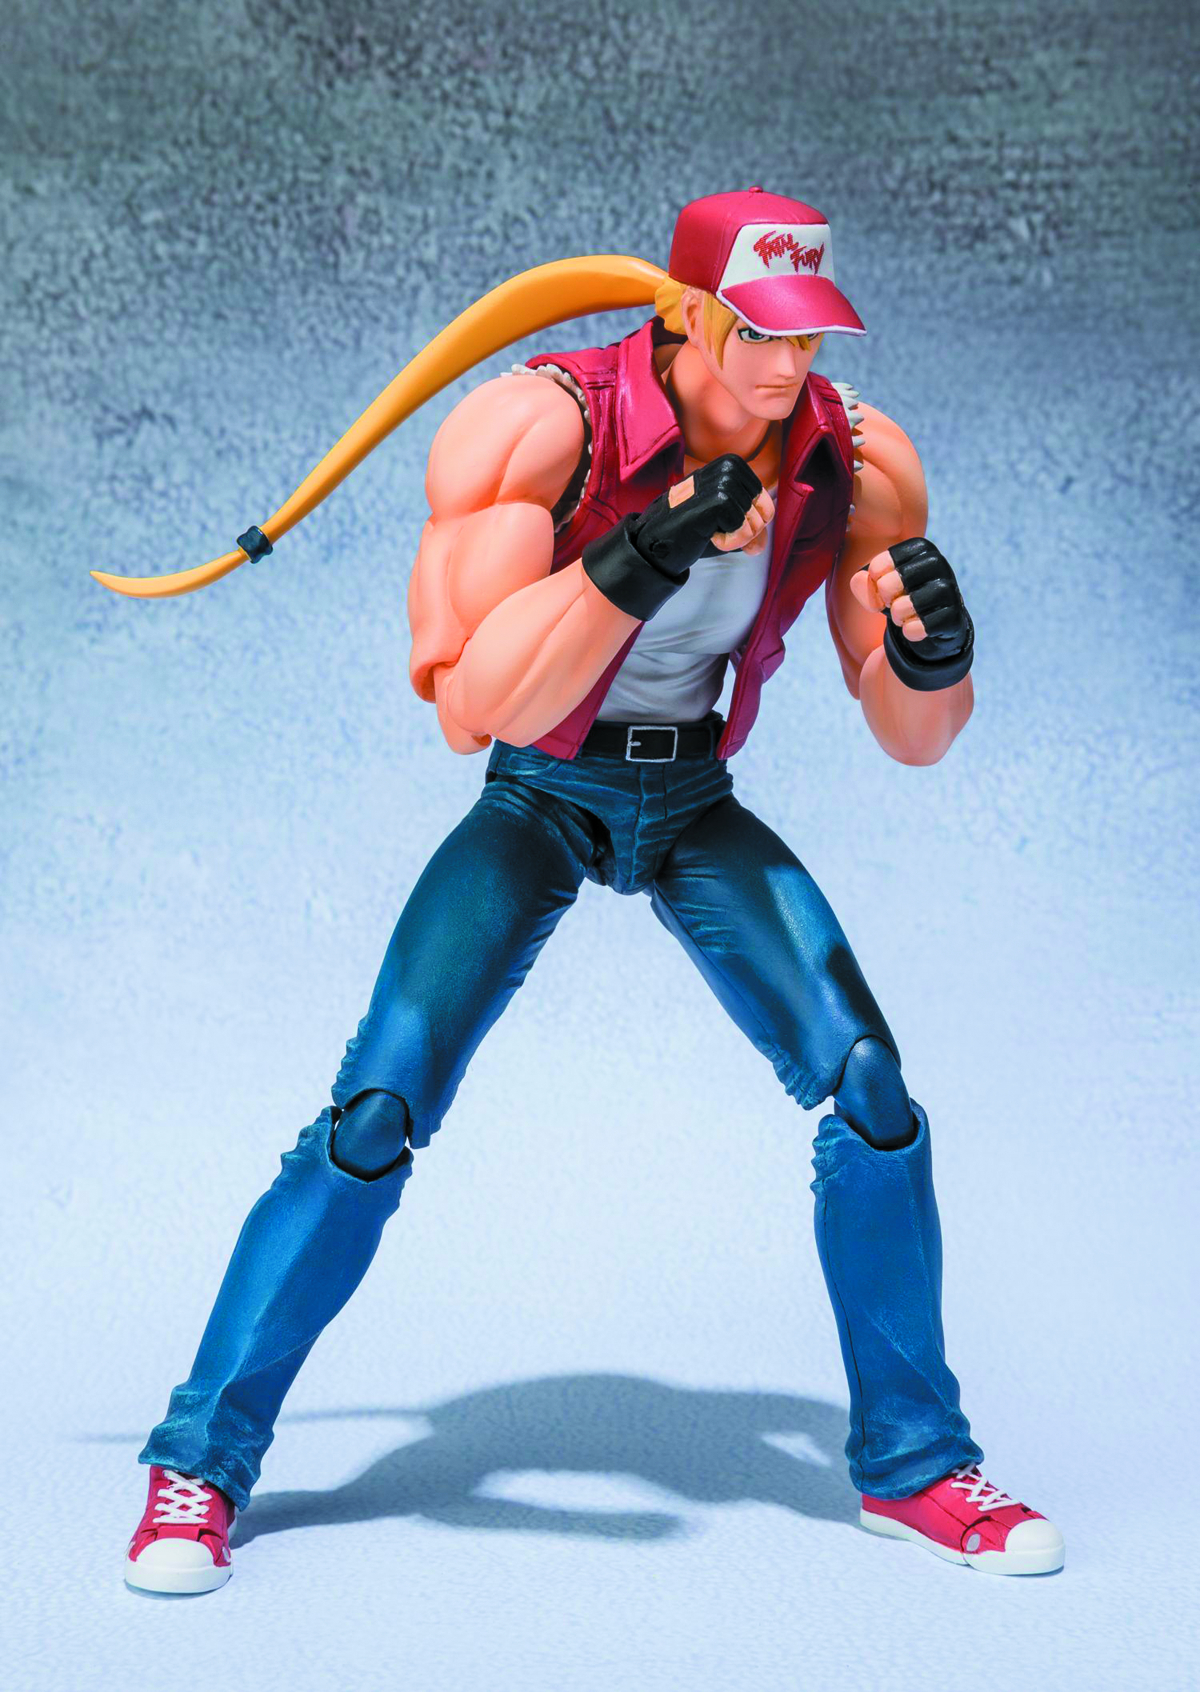 KING OF FIGHTERS TERRY BOGARD D-ARTS AF